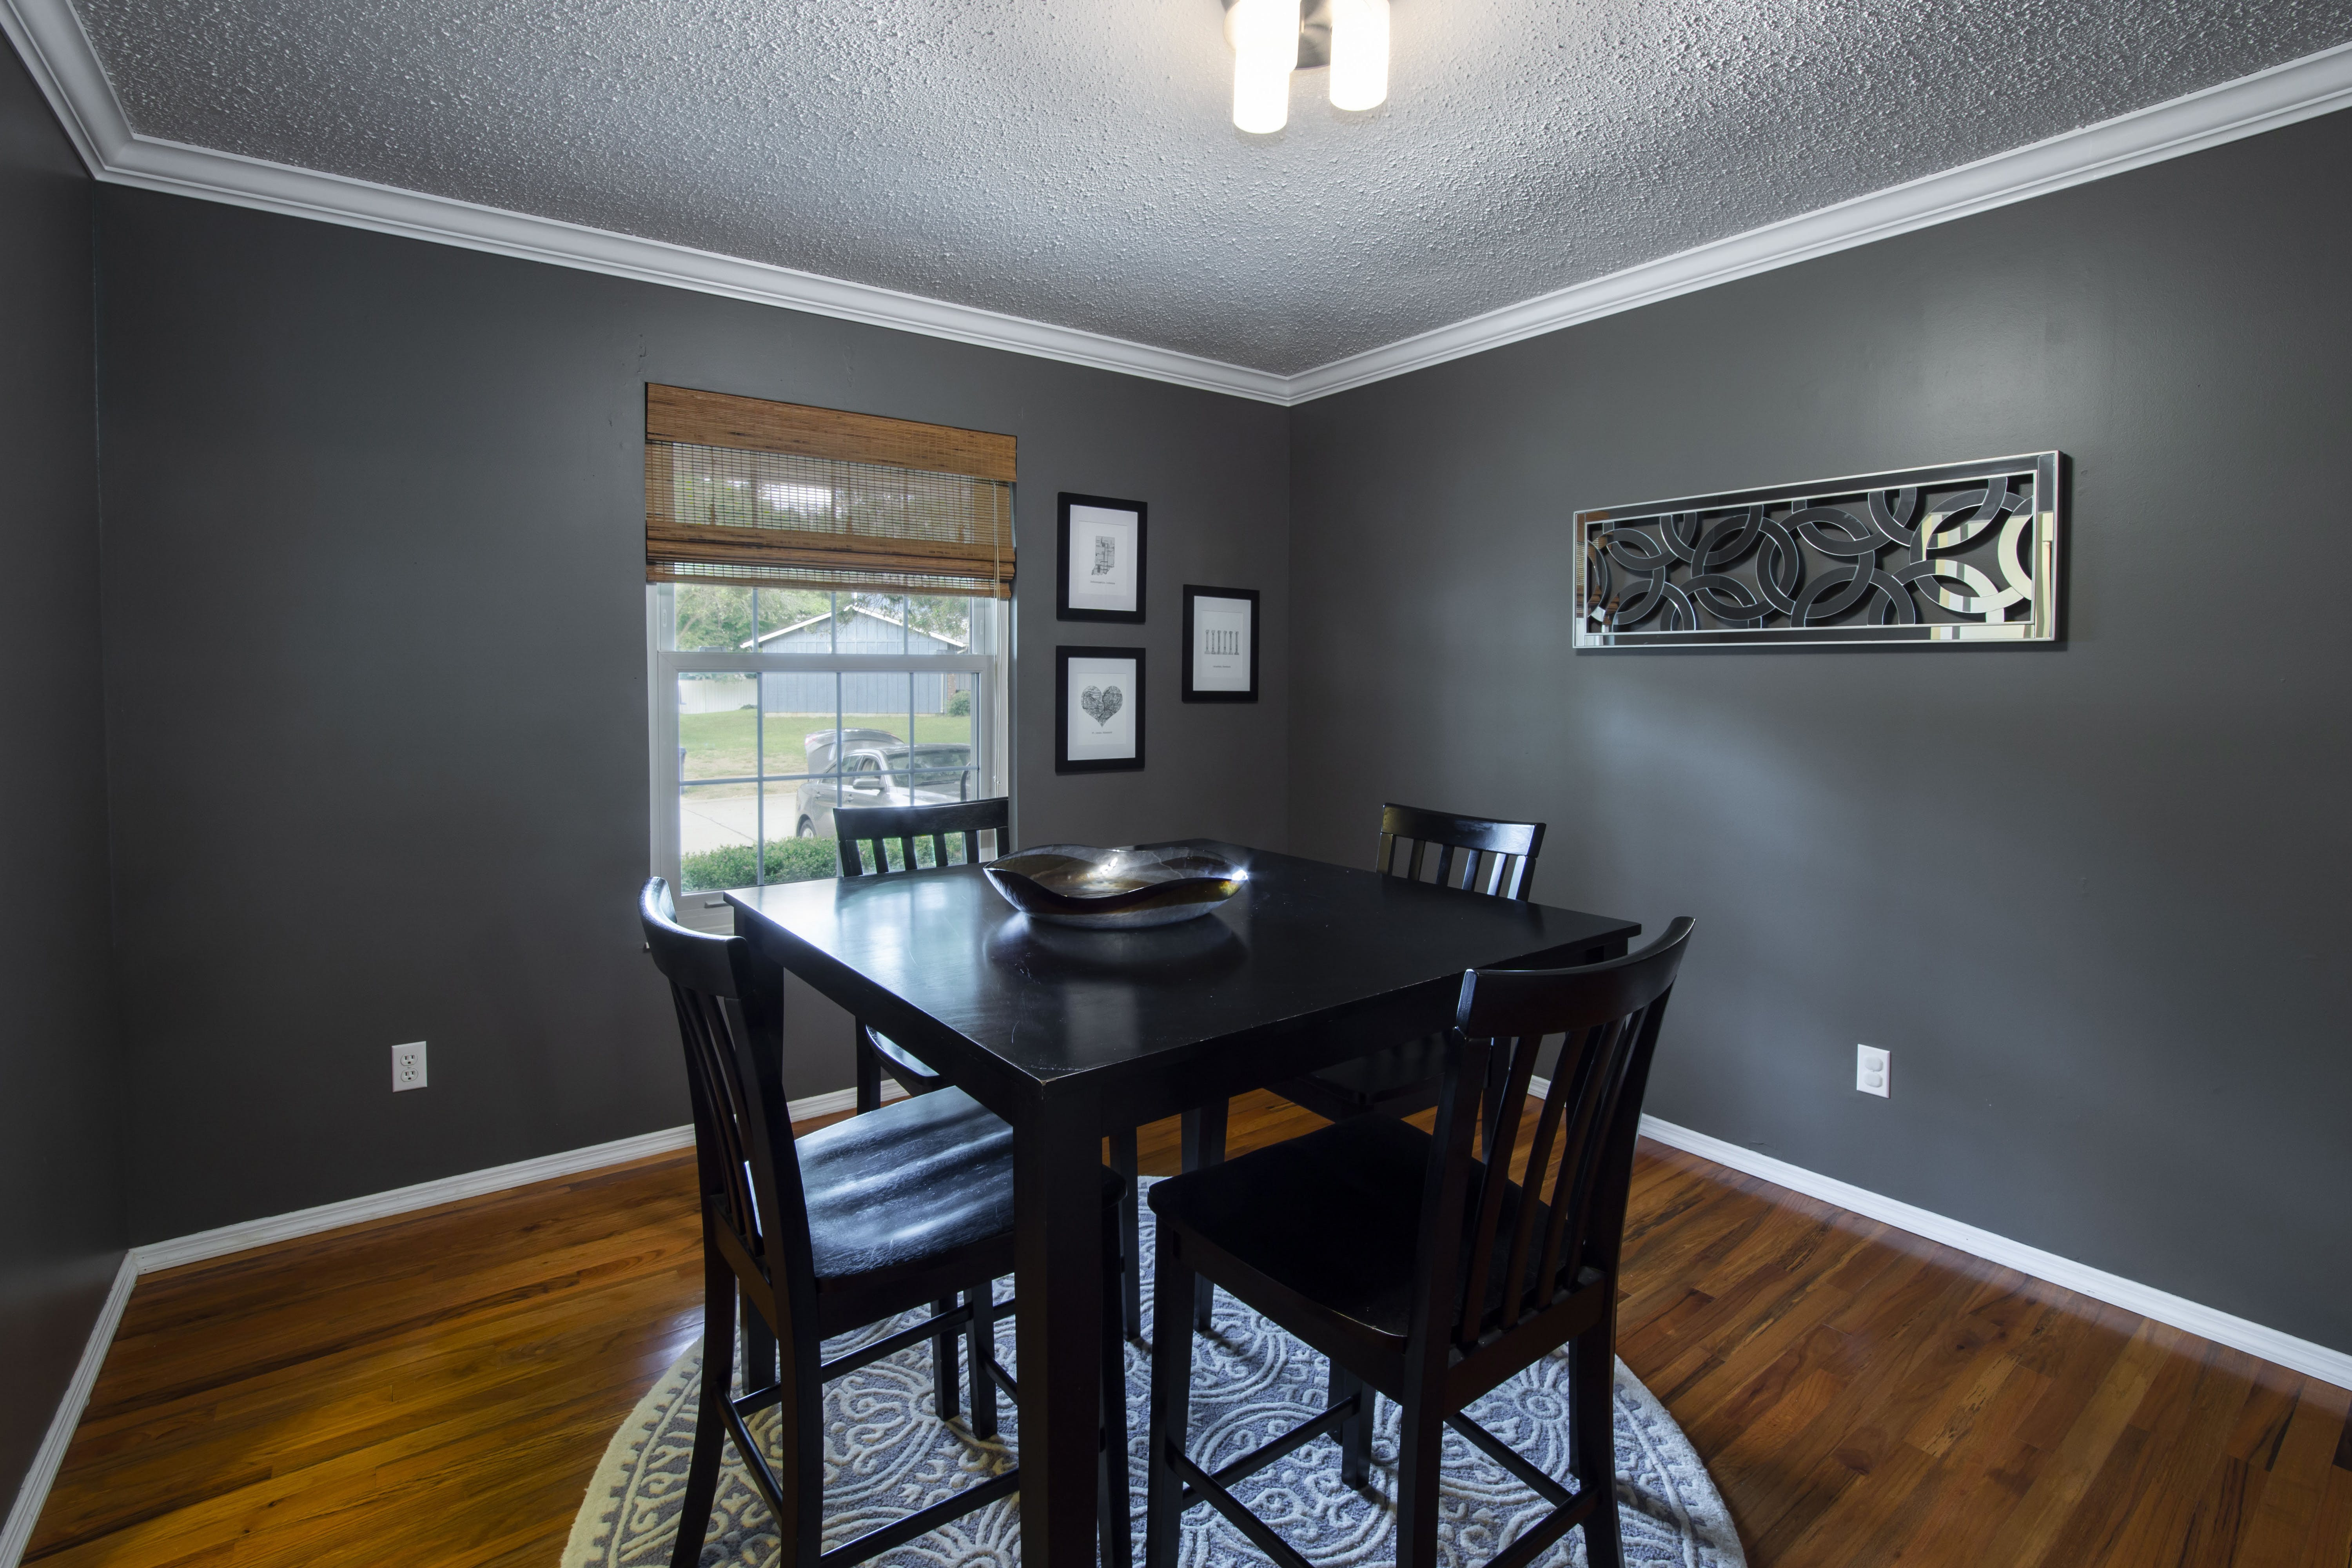 Black Wooden Table and Chairs Set